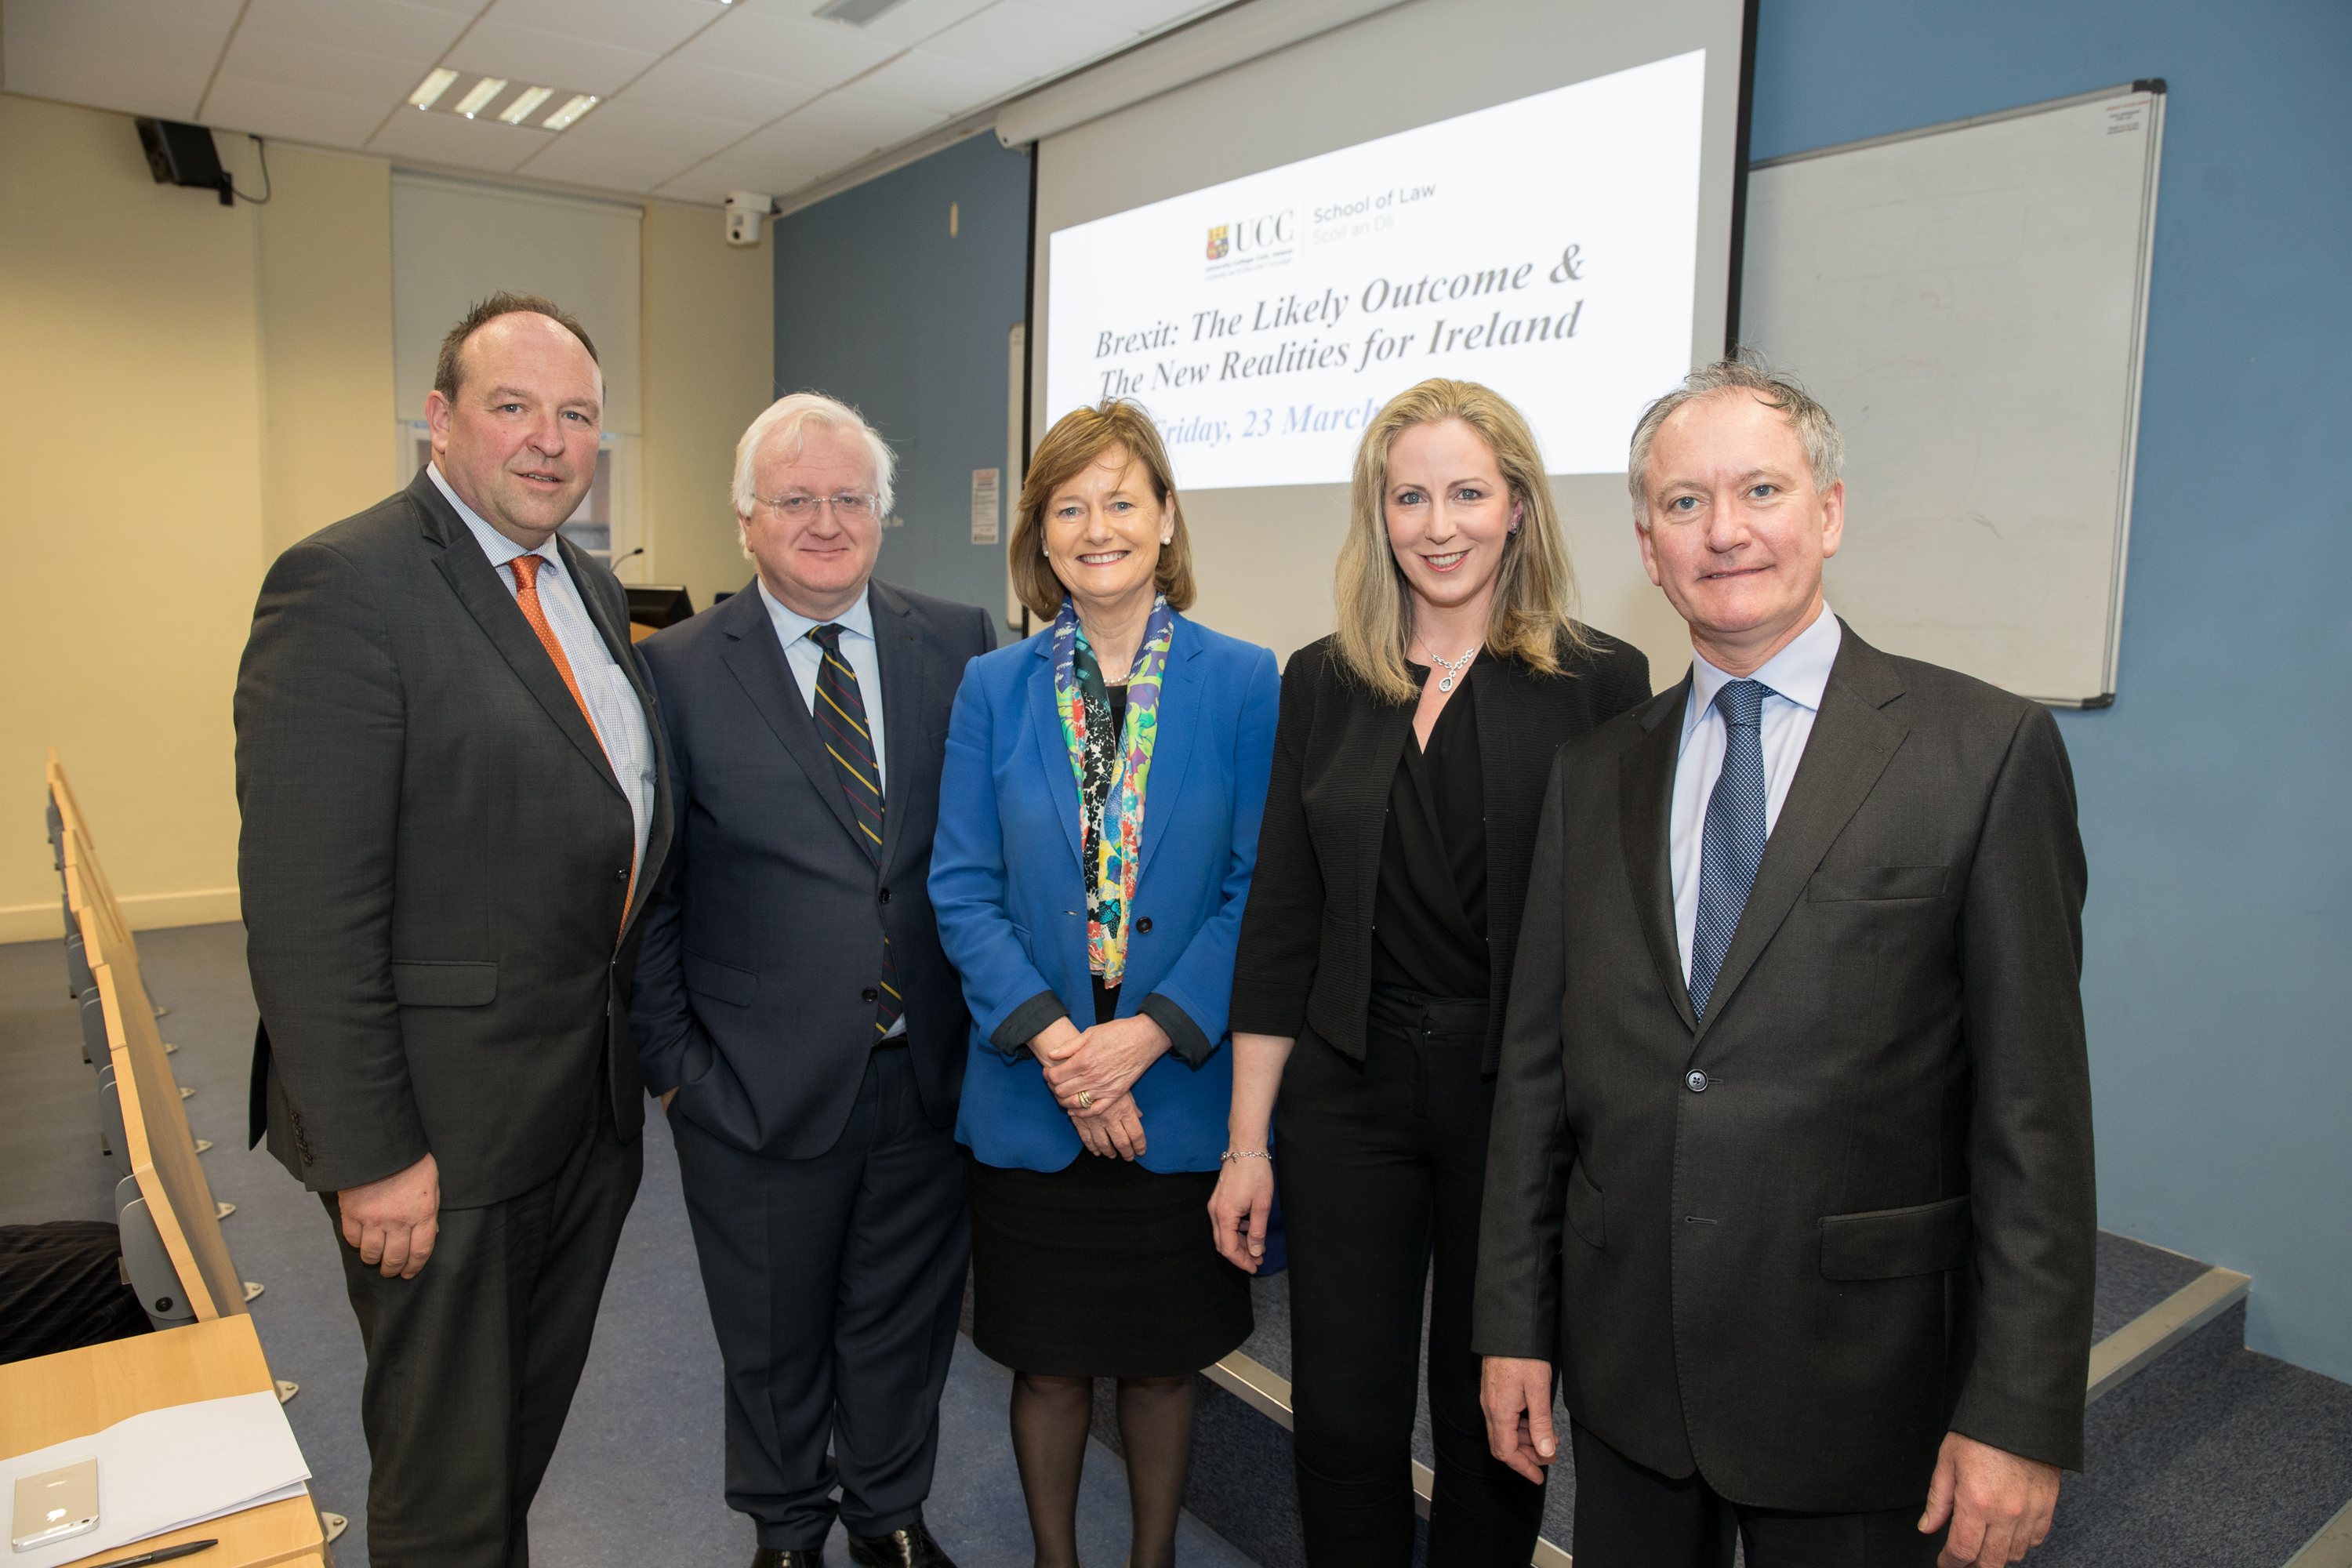 Declan Walsh stands along side Dr Vincent Power, Deirdre Clune MEP, Dr Mary C. Murphy, and Judge Anthony M Collins ahead of our Brexit Seminar